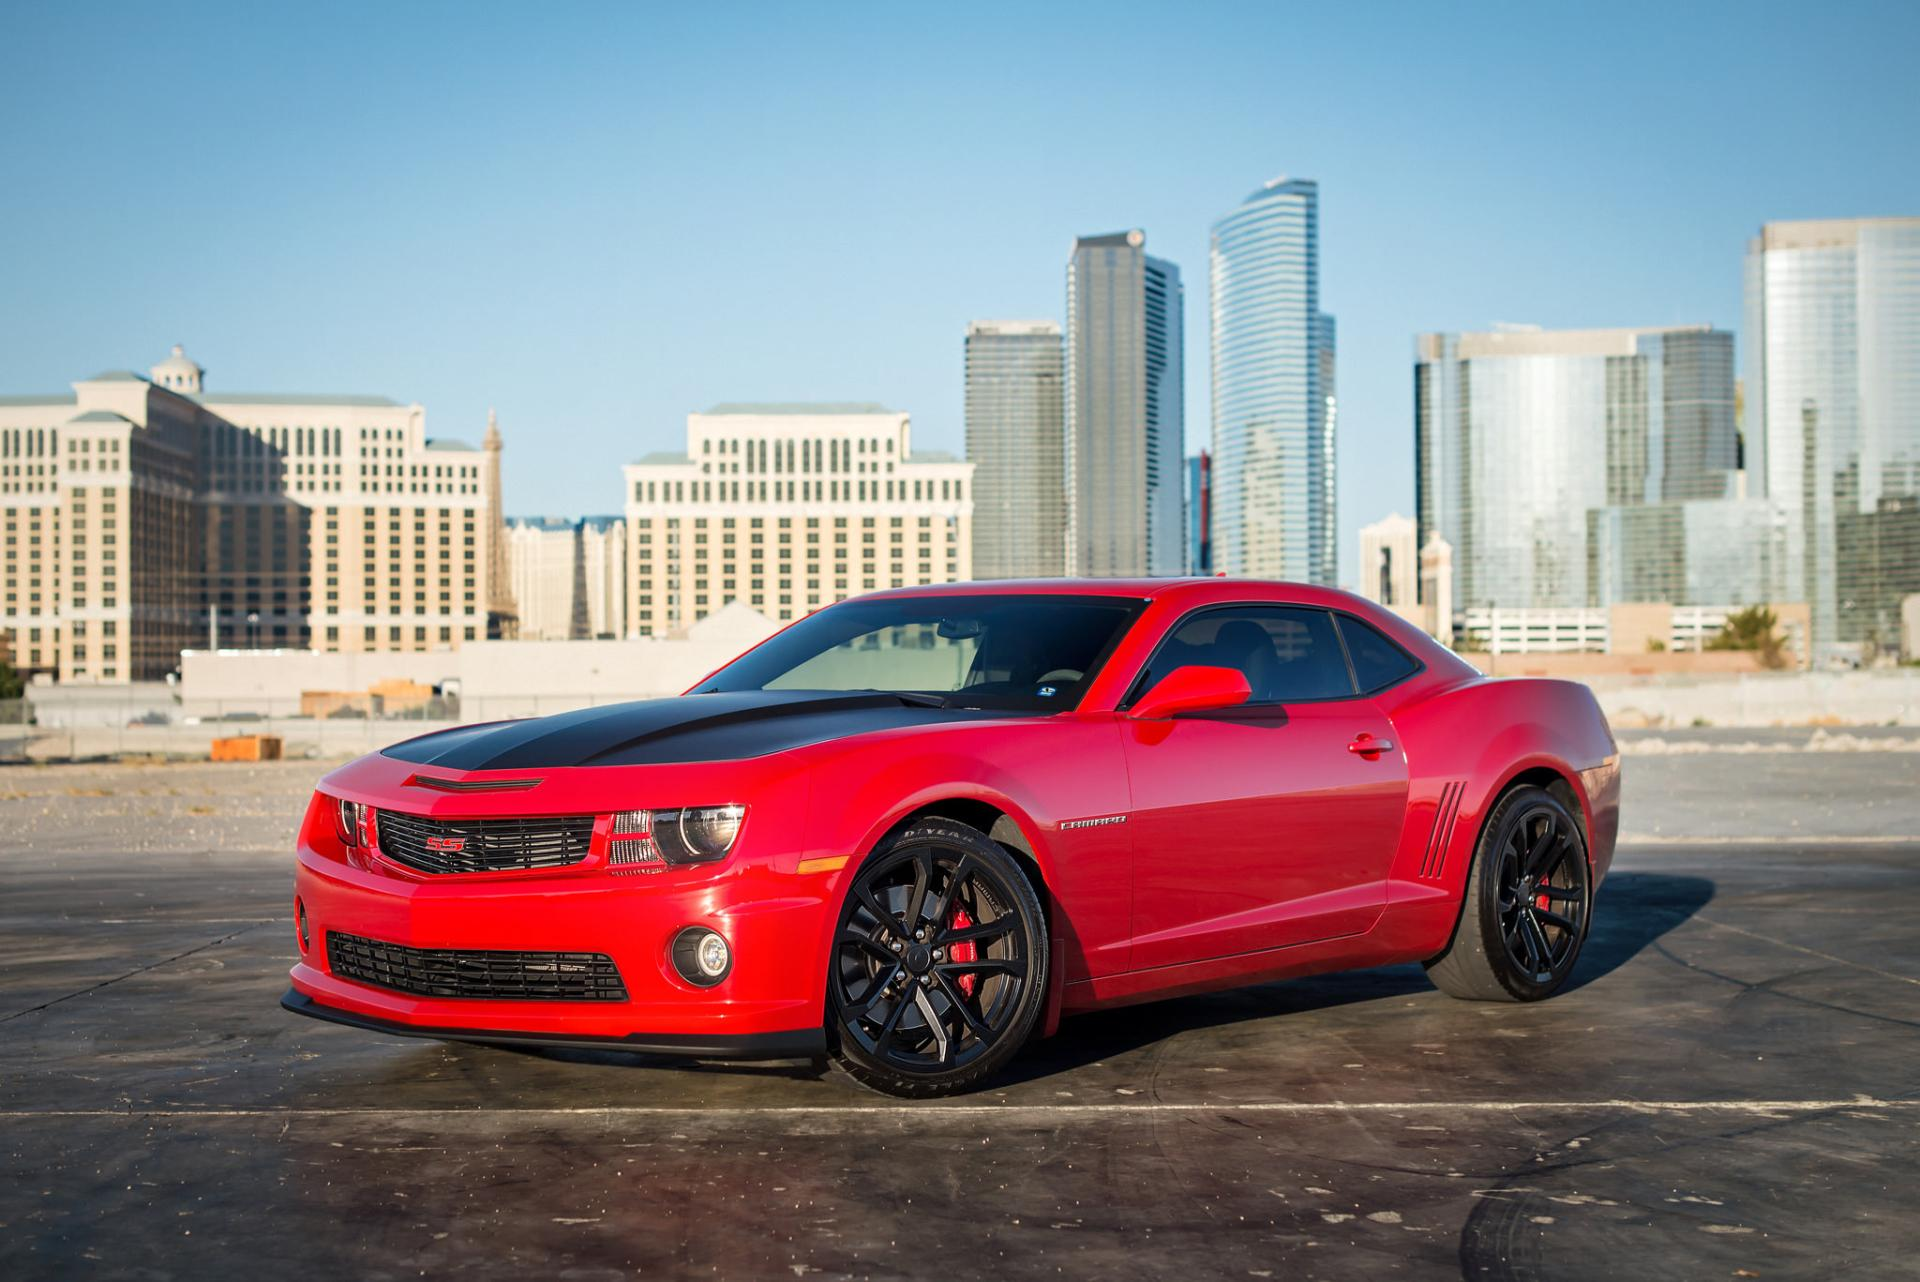 Chevrolet camaro ss wallpaper hd download - Camaro ss ...